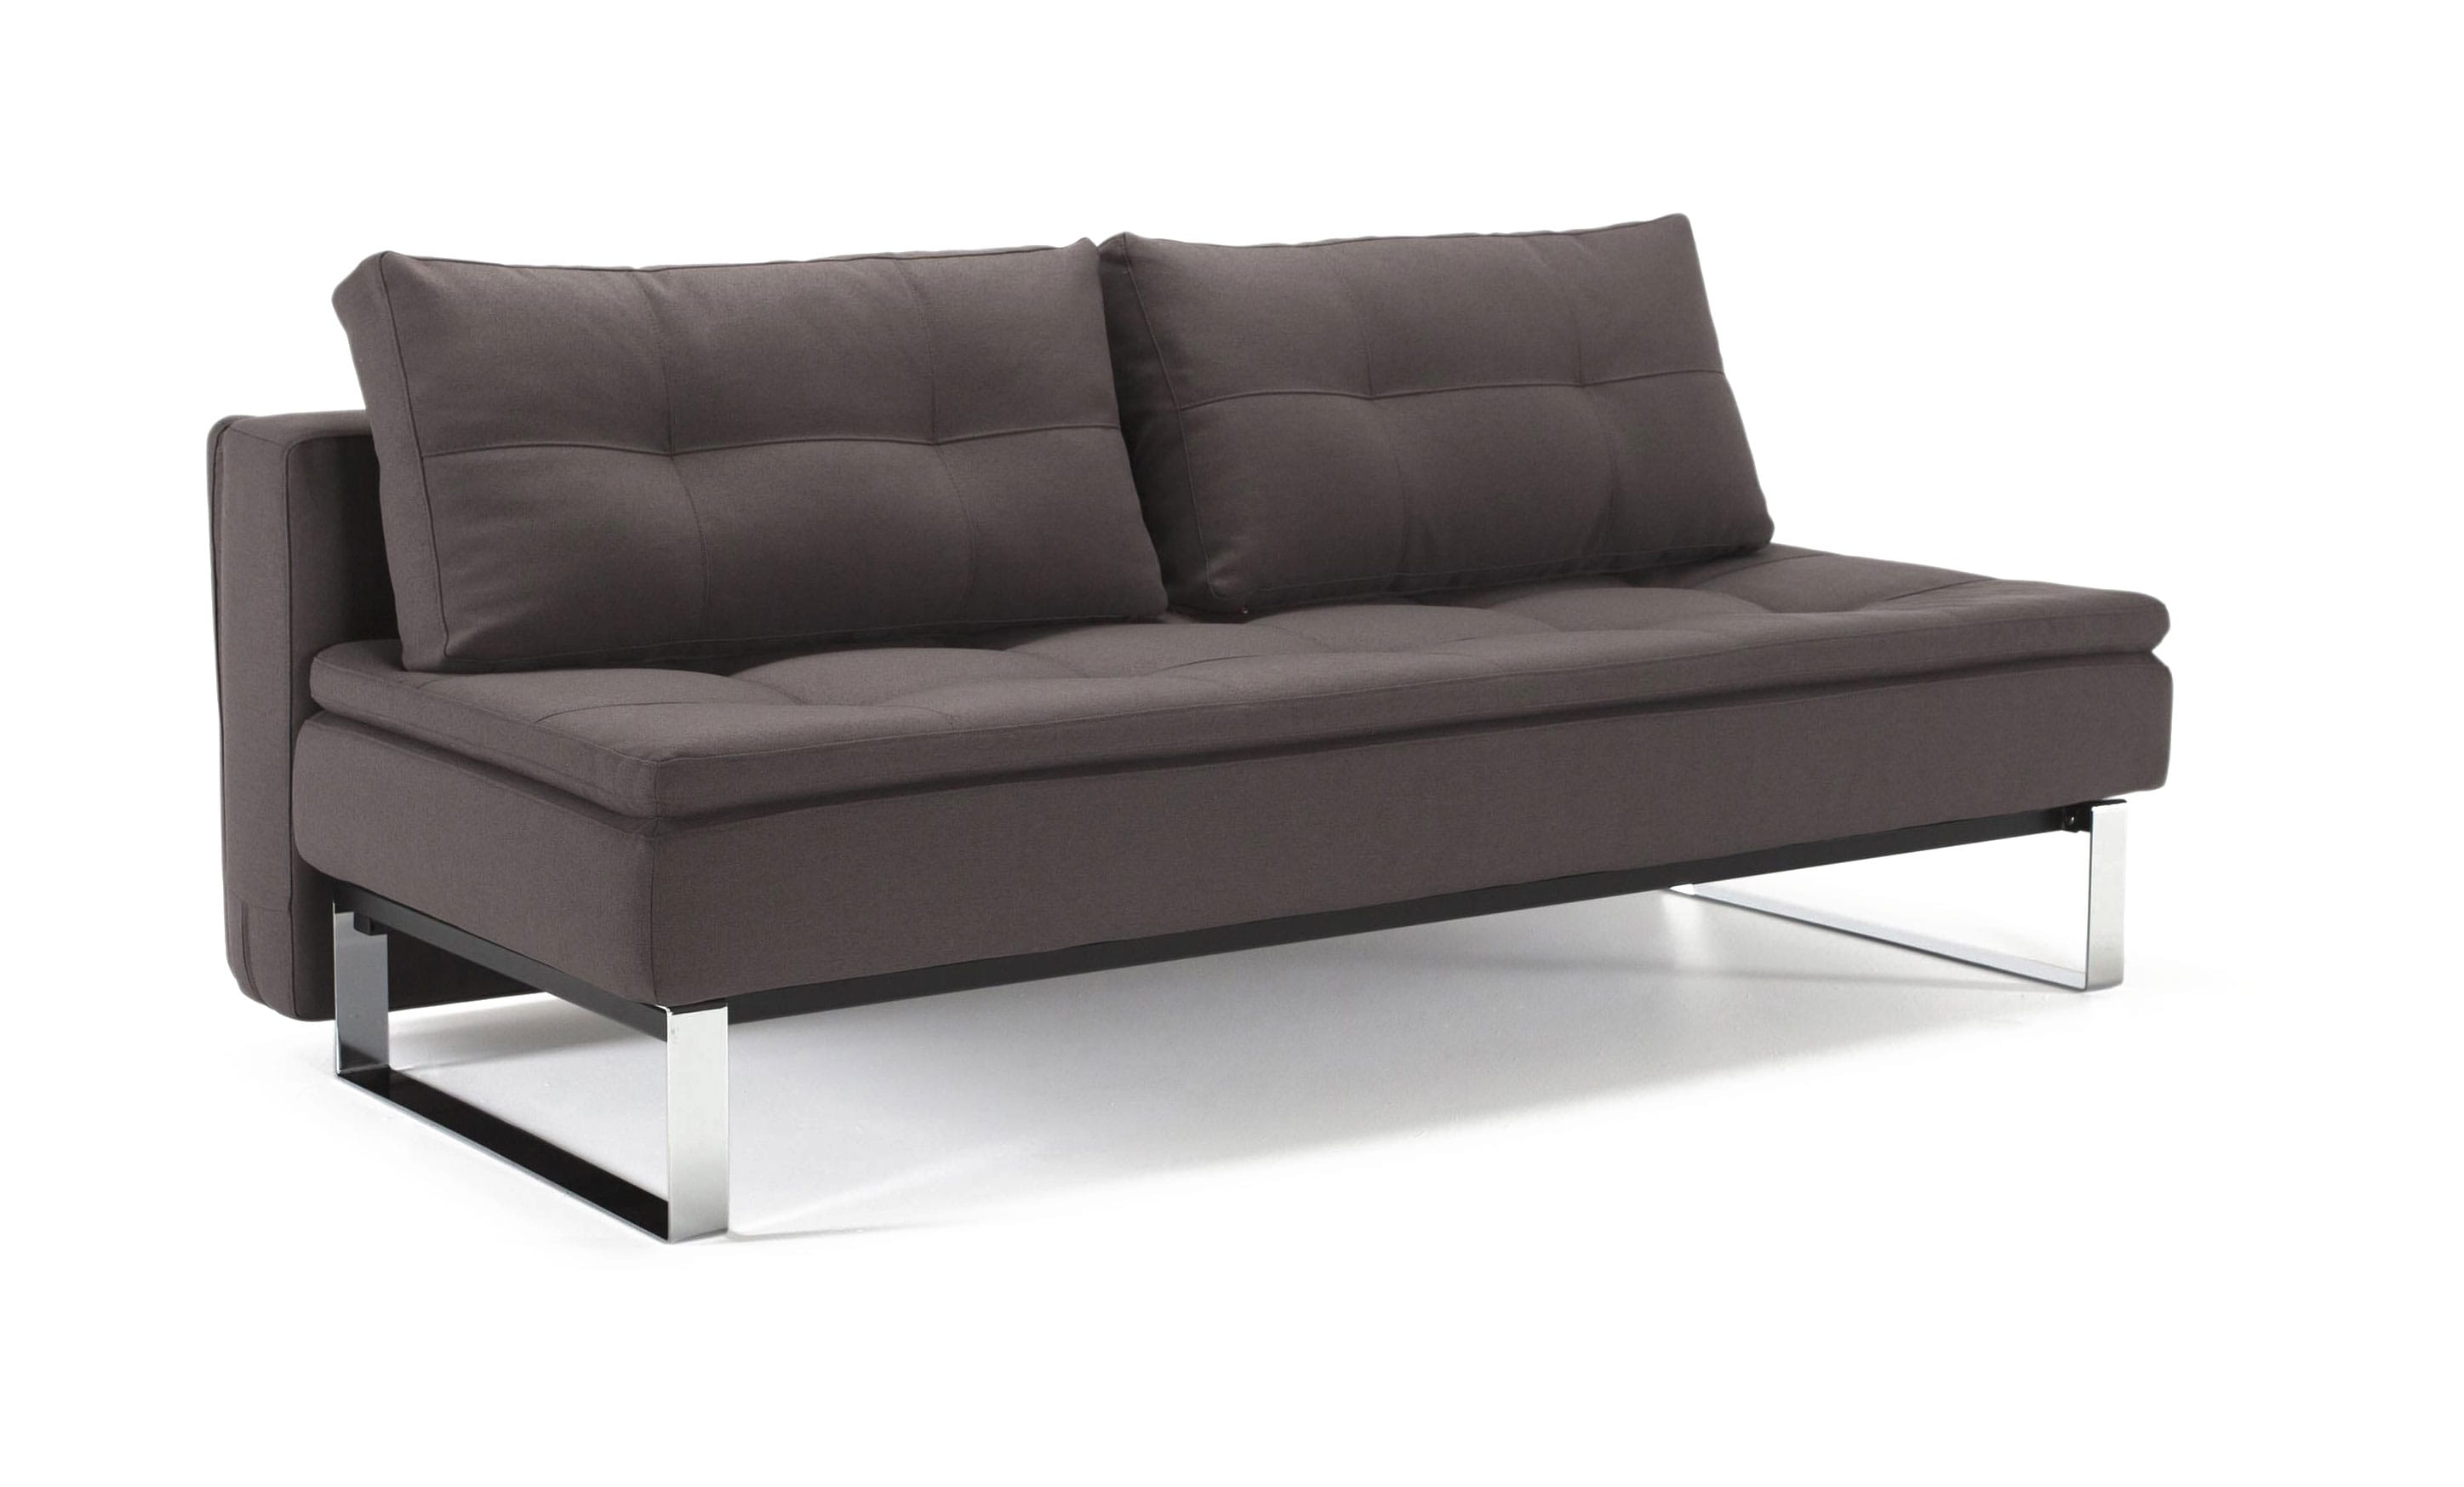 Supremax Dual Sofa Bed Full Size Soft Gray By Innovation